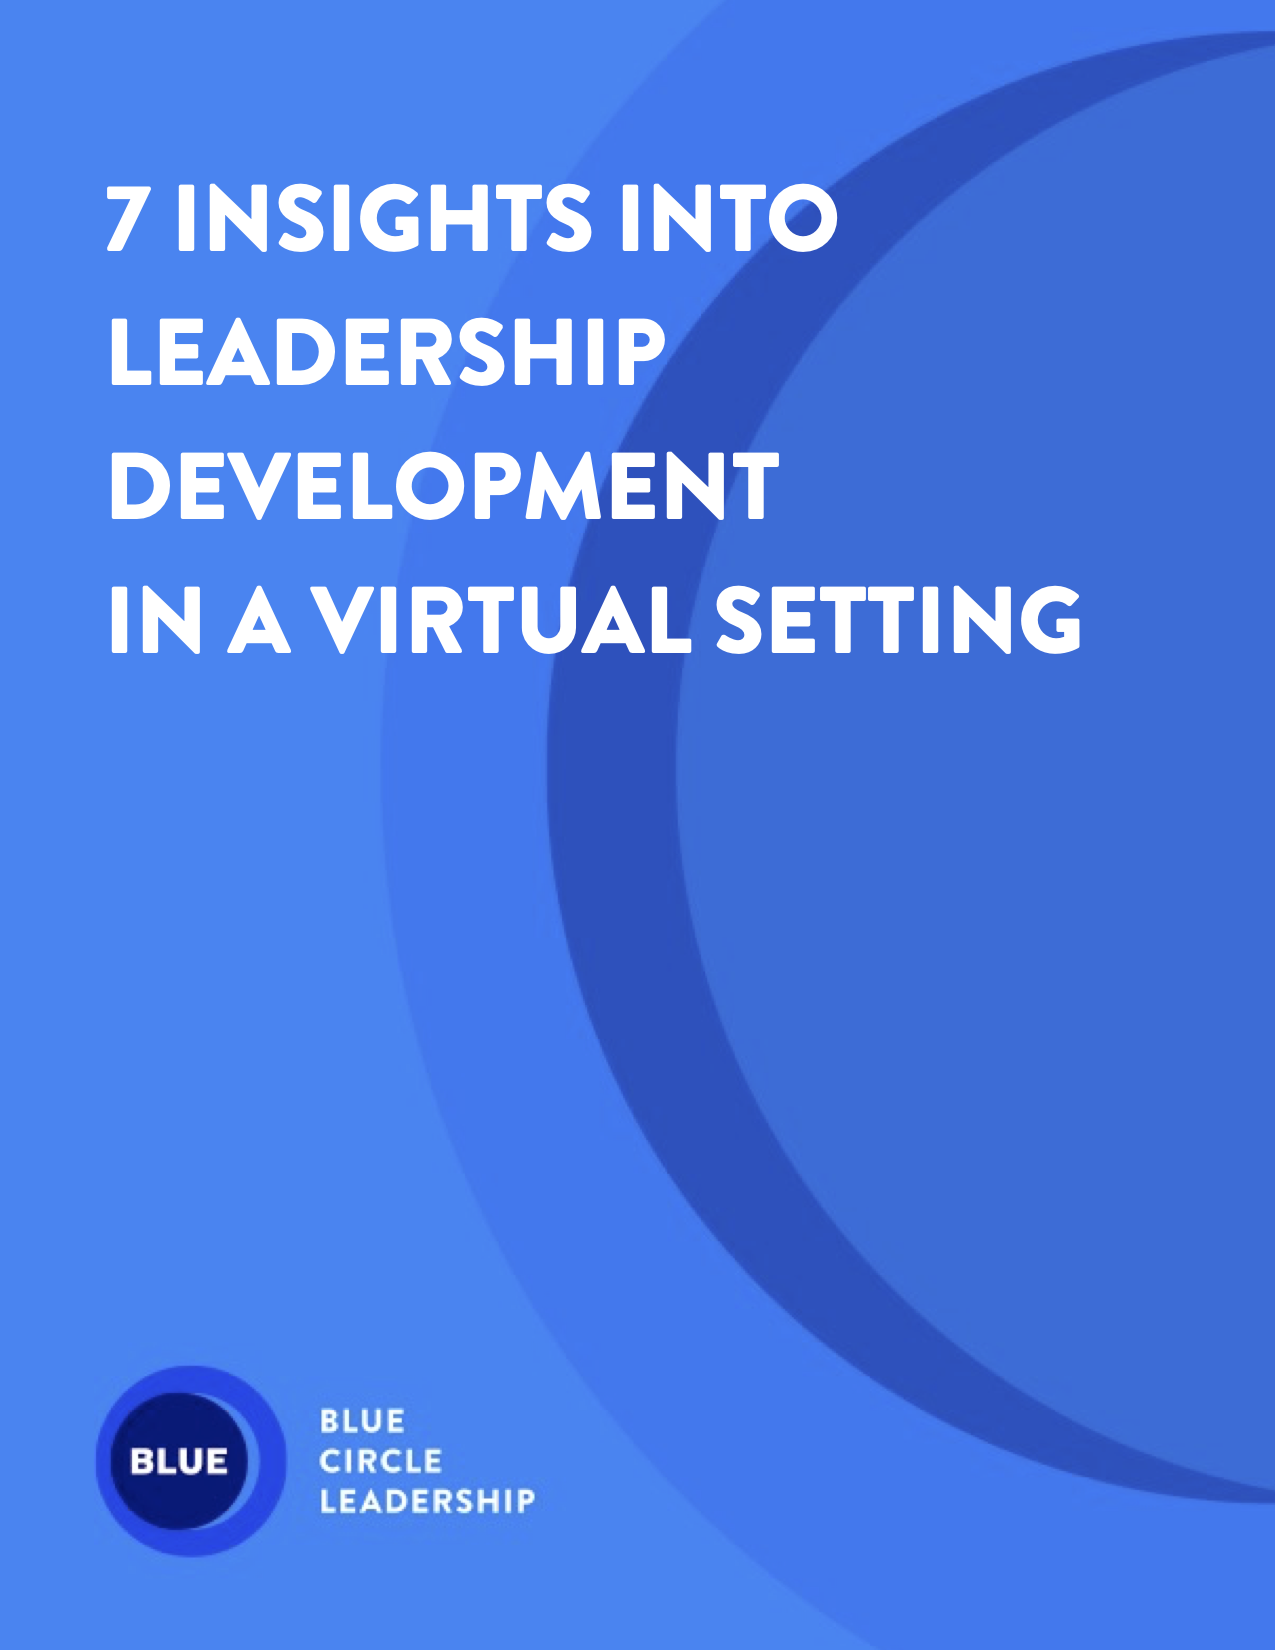 7 Insights into Leadership in a Virtual Setting